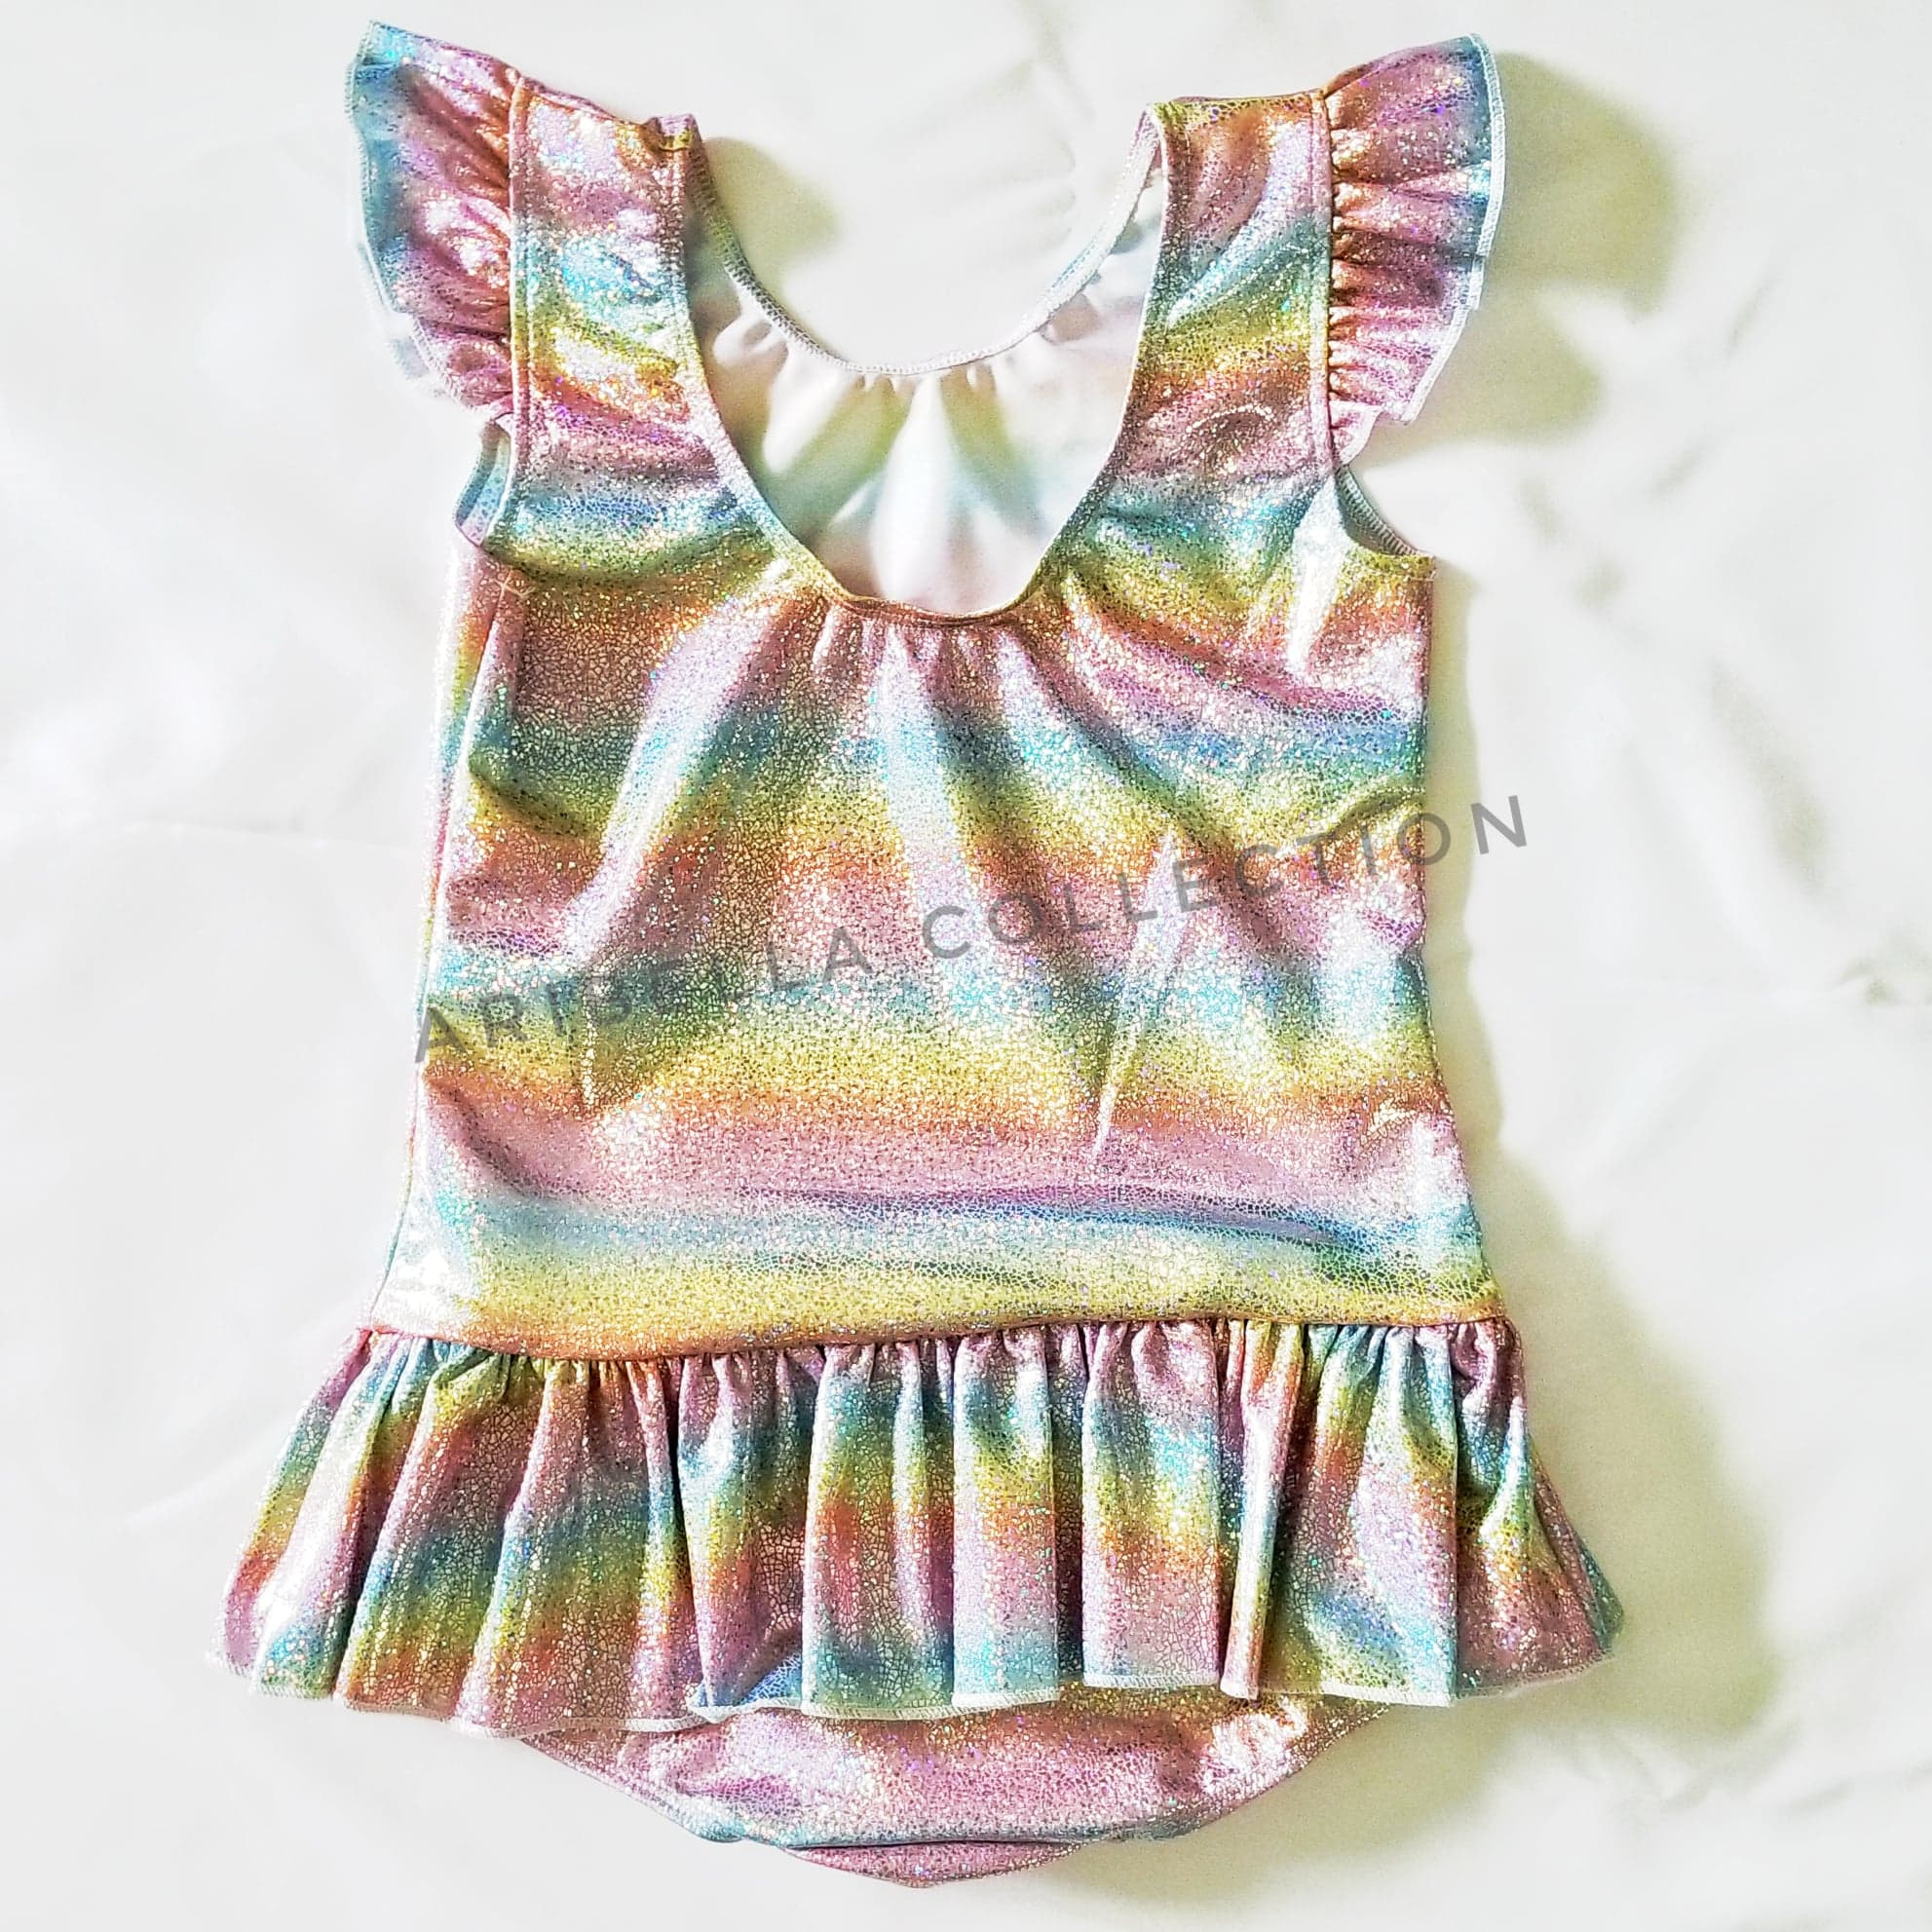 Unicorn One Piece Skirted Swimsuit Leotard - Sparkly Rainbow or Rainbow - Aribella Collection